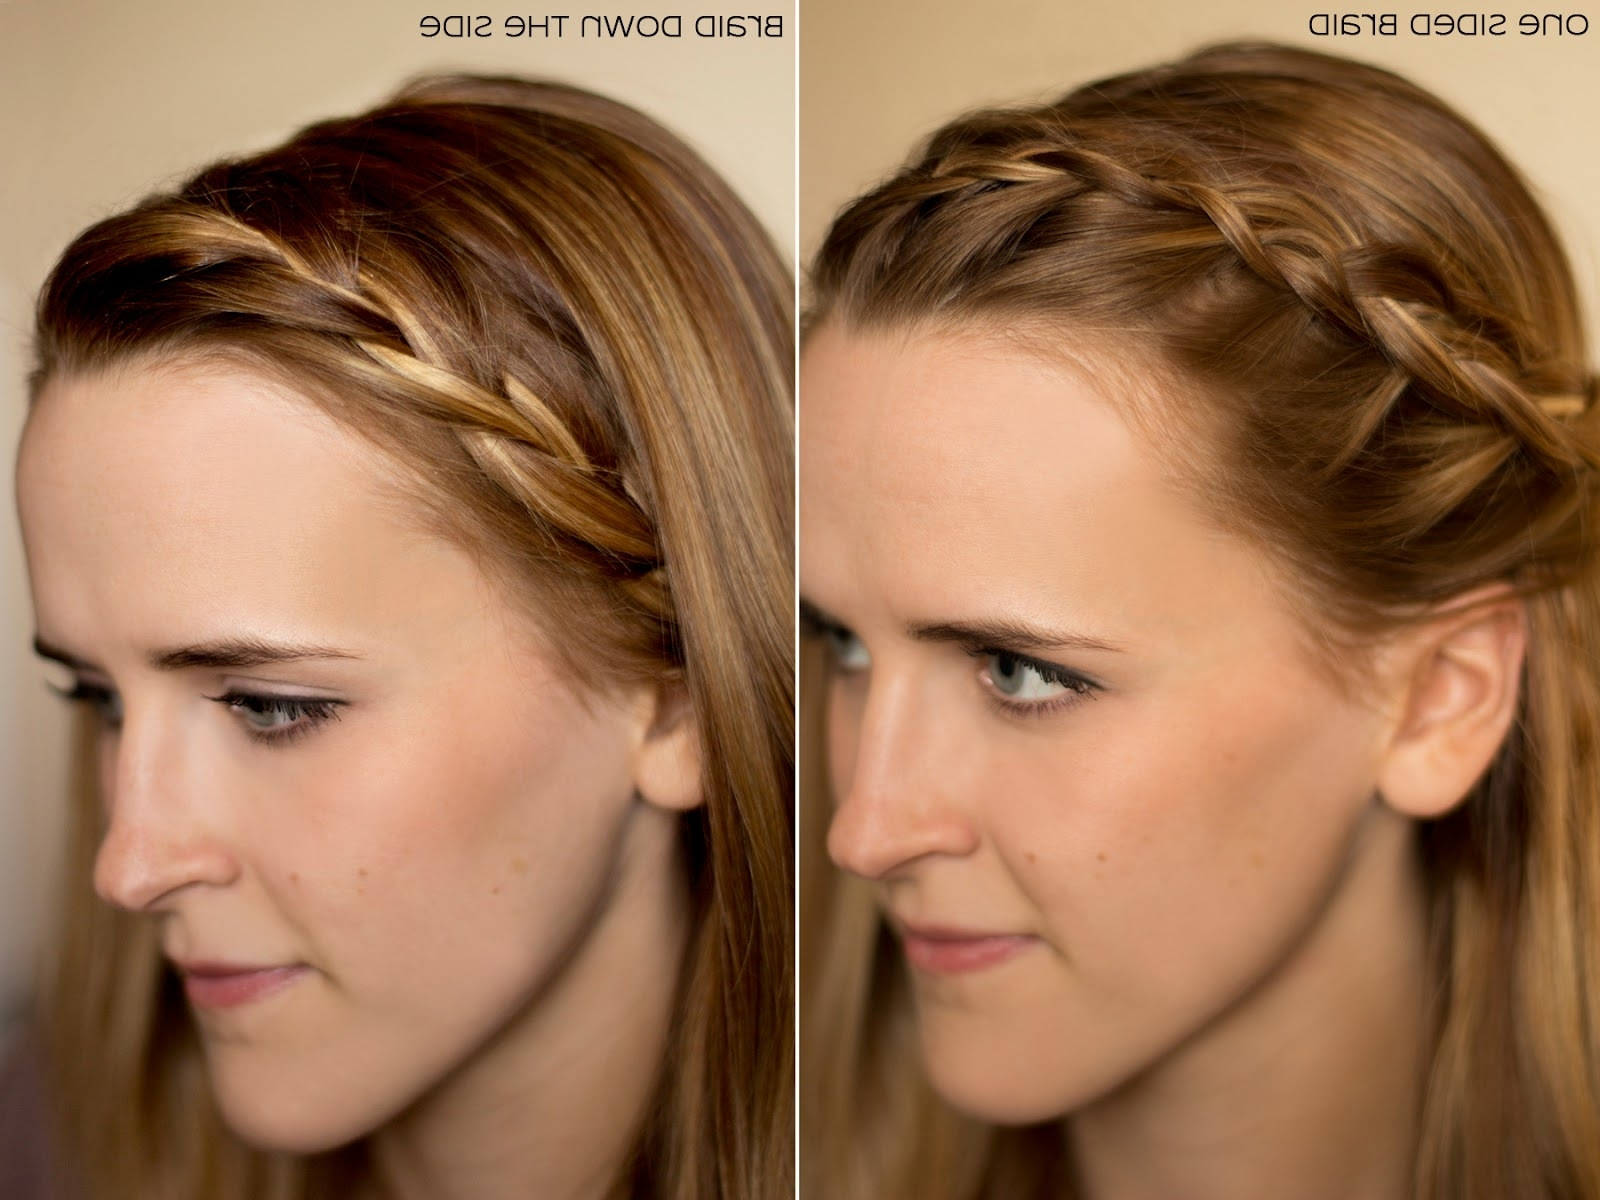 15 Ways To Pull Back Your Bangs (View 10 of 15)